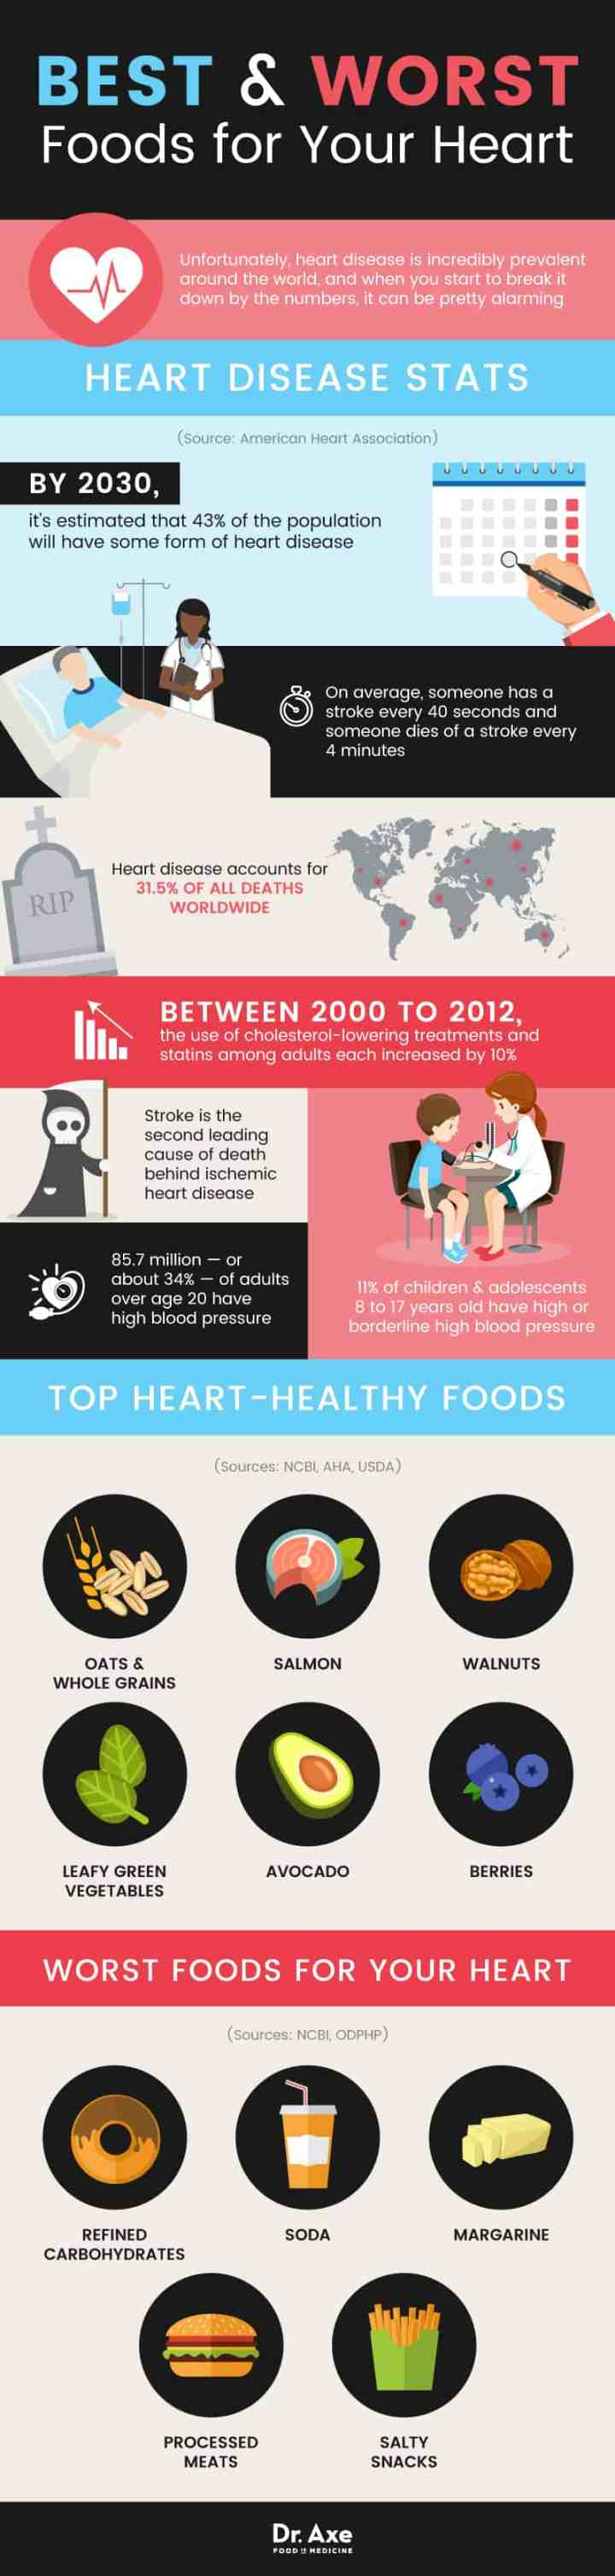 Heart-healthy foods - Dr. Axe